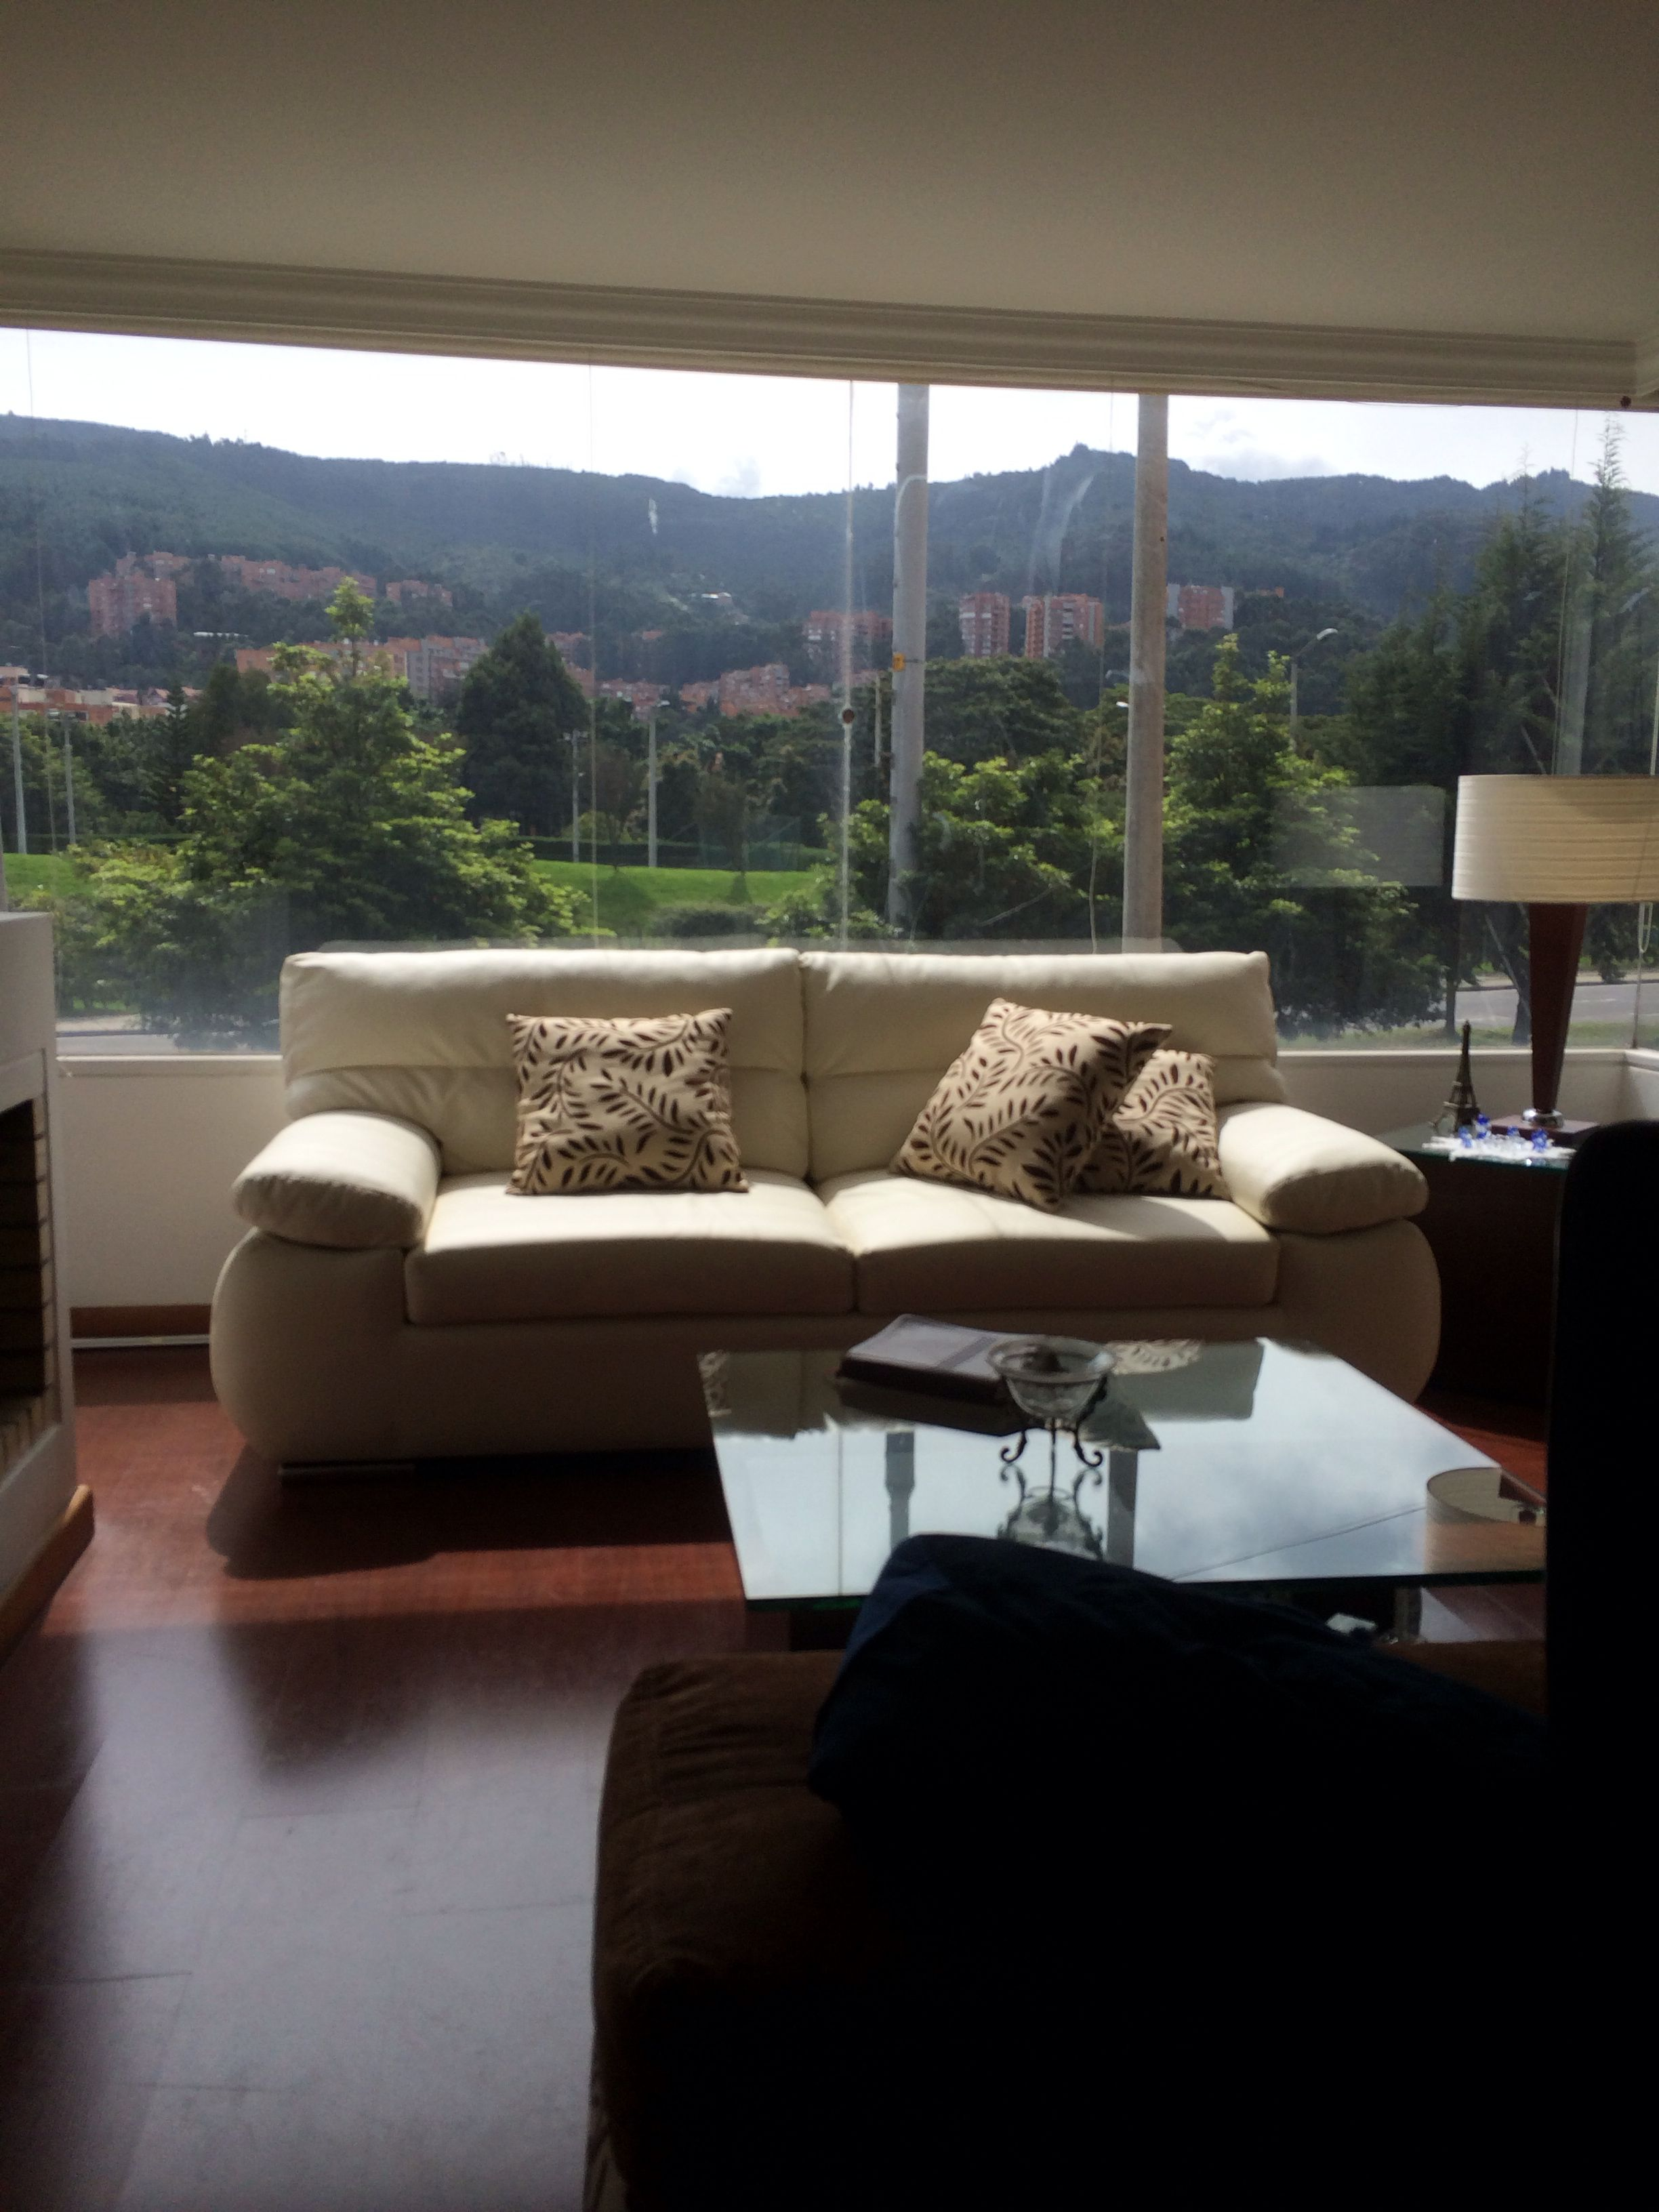 Room with a view in Bogotá, Colombia